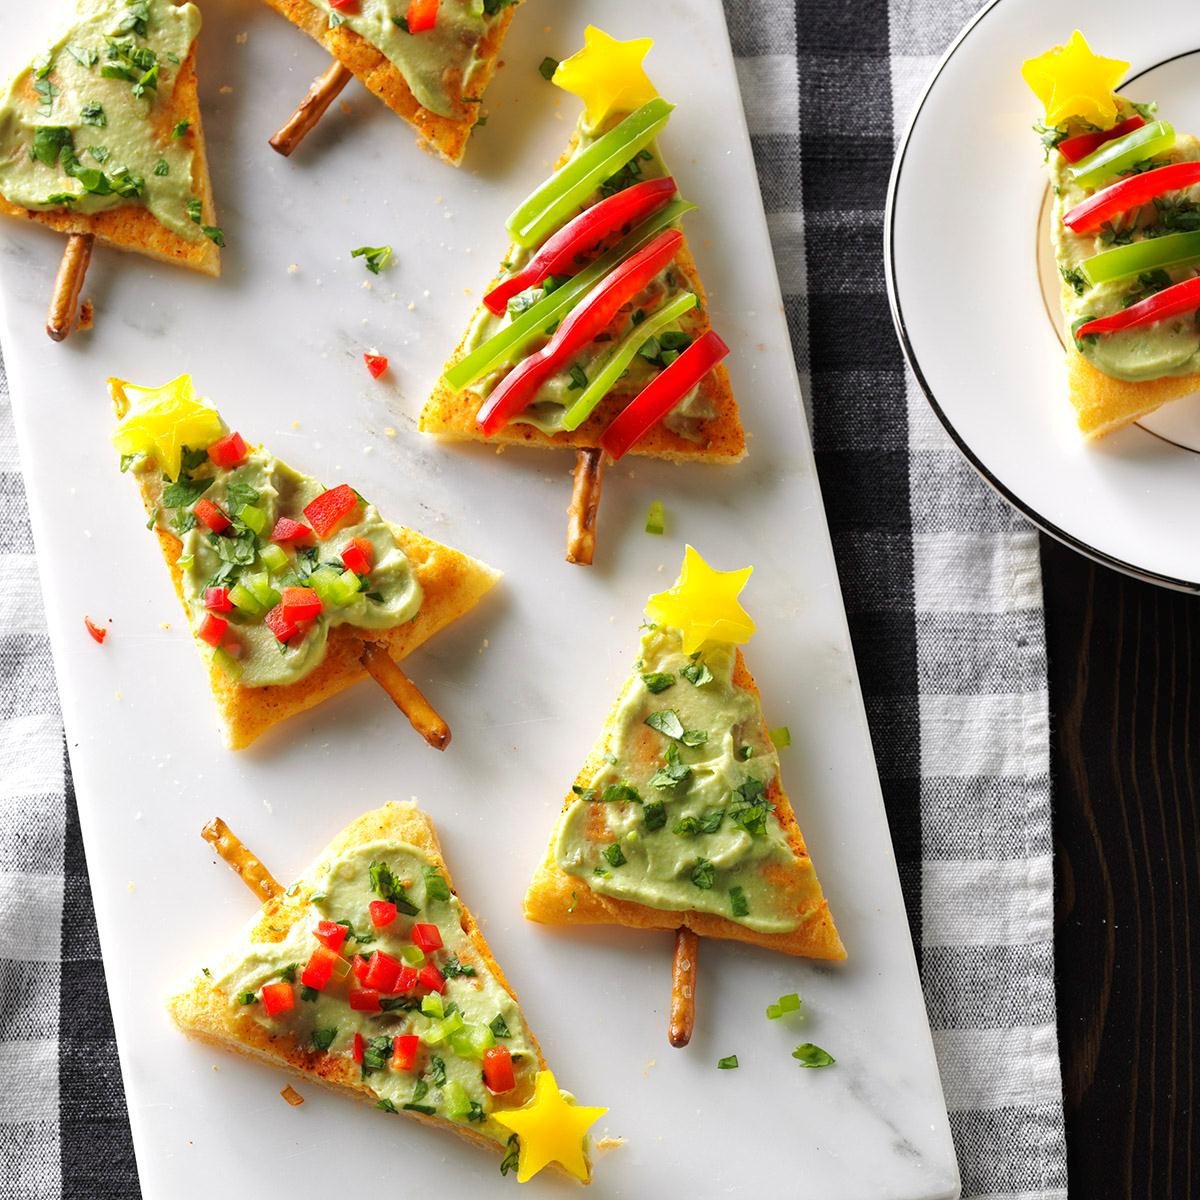 Festive Christmas Appetizers  55 Festive Christmas Appetizers That Will Make You Merry